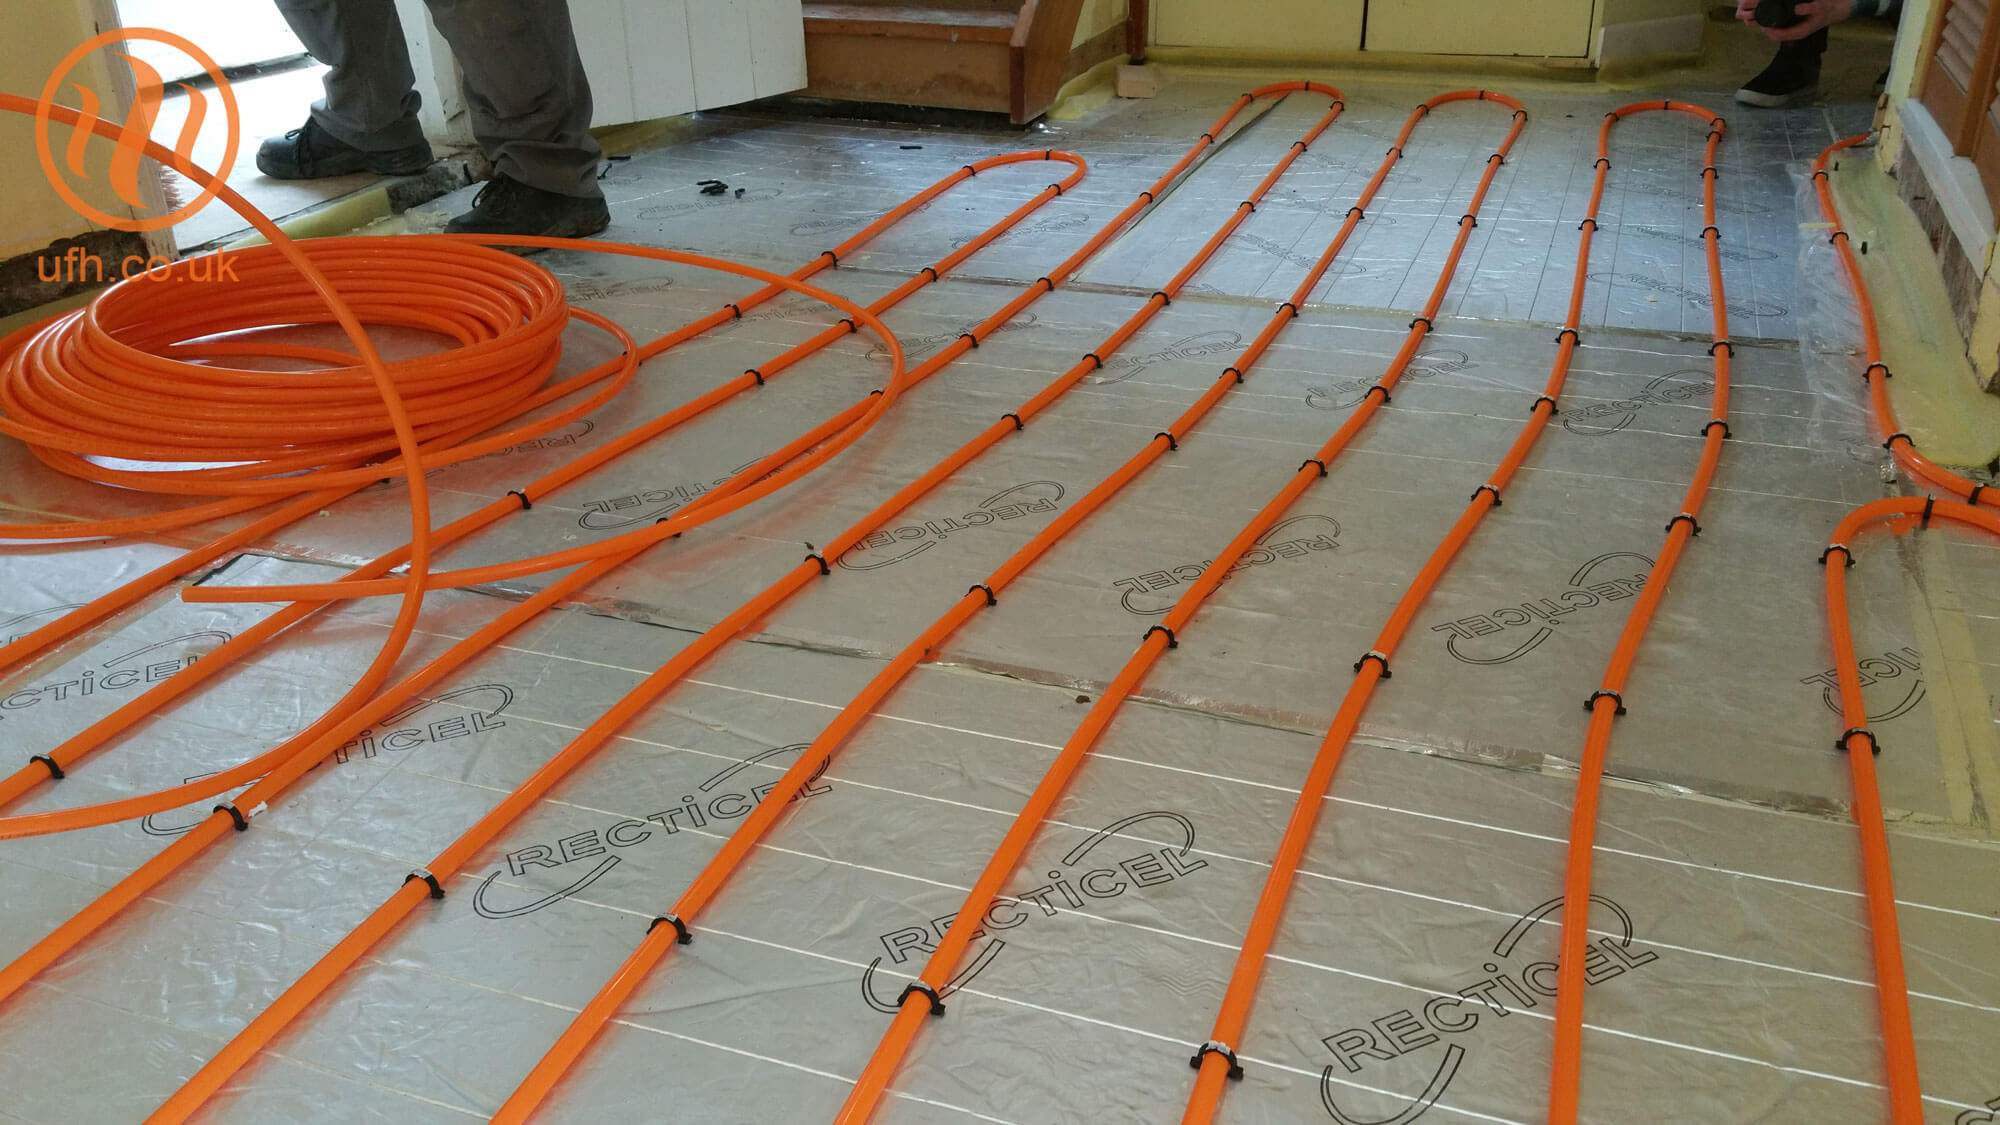 Preventing and fixing damage to UFH systems